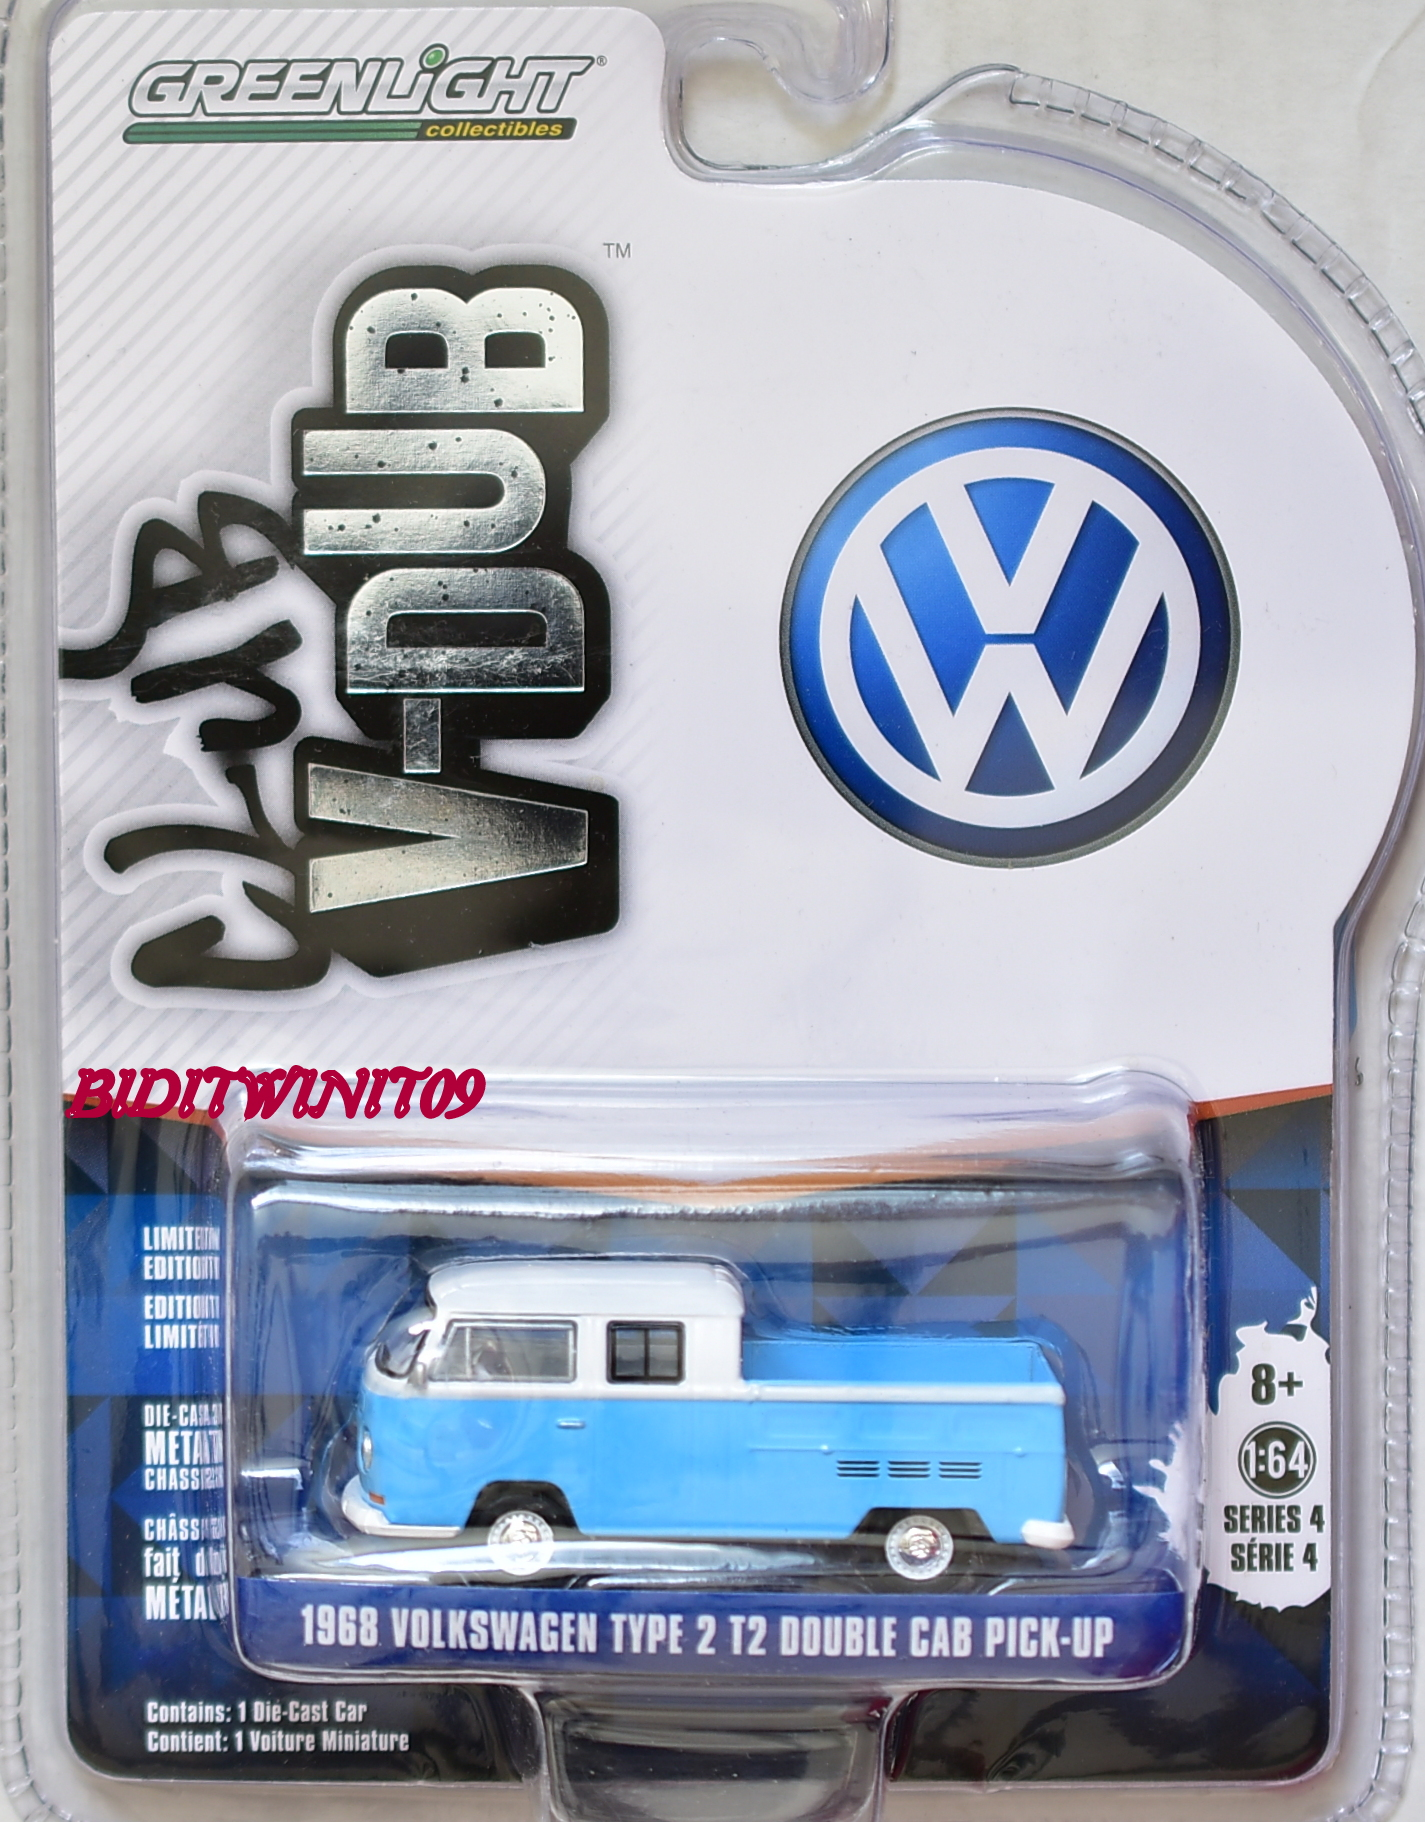 GREENLIGHT 2017 CLUB V-DUB 1968 VOLKSWAGEN TYPE 2 T2 DOUBLE CAB PICK-UP